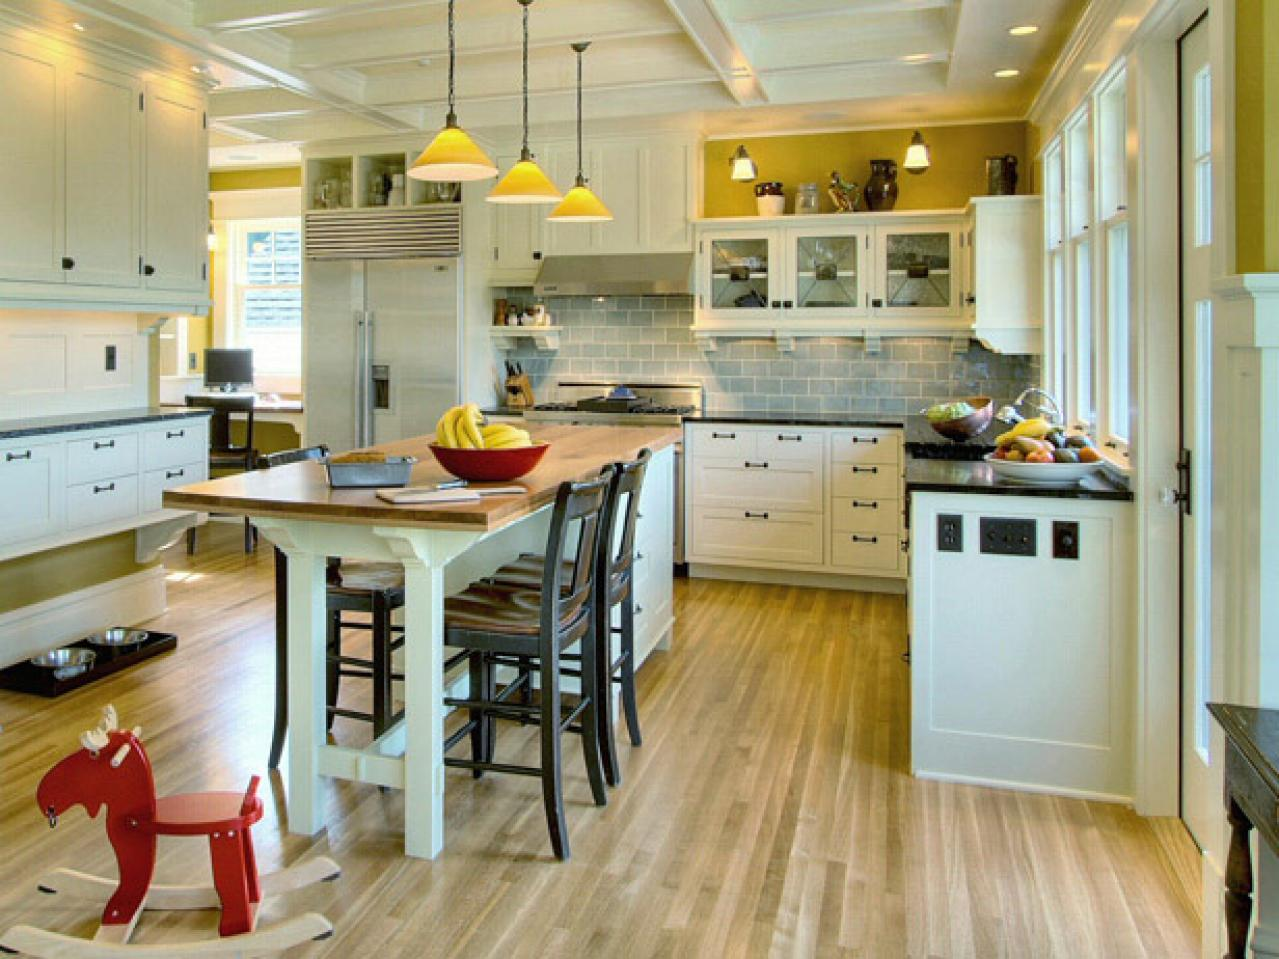 10 kitchen islands kitchen ideas design with cabinets for Kitchen designs island